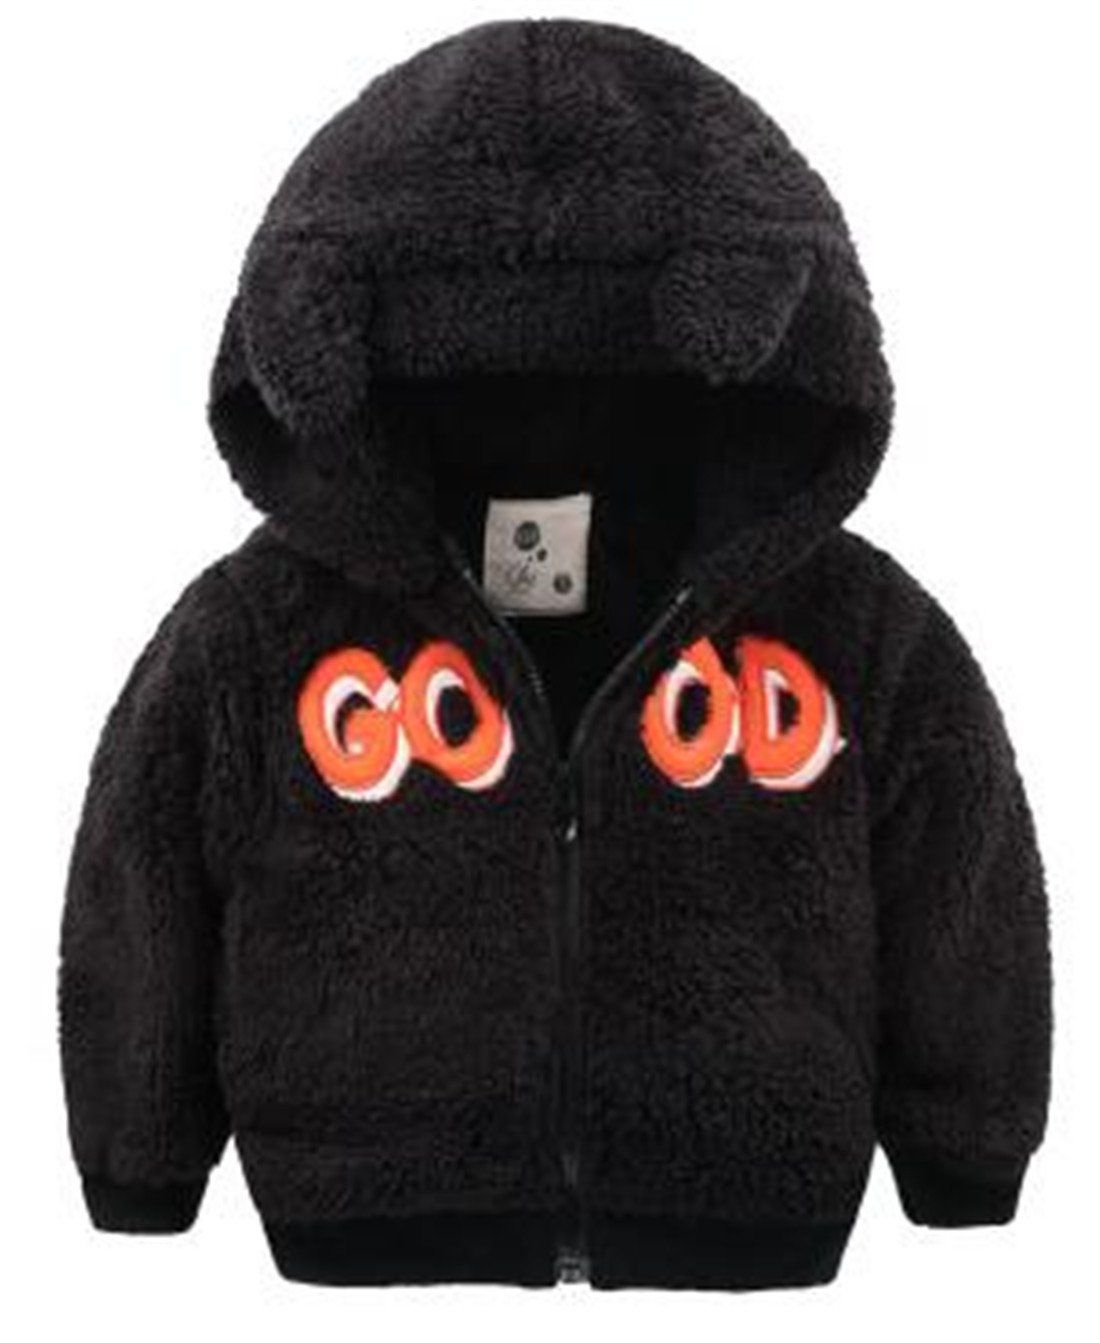 Yayu Kids Baby Boys Winter Embroidery Good Zipper Hooded Coat Jacket Black 6y 1 Or 2 Sizes Up Suggested As Ours Ar Coats Jackets Women Zipper Hood Boys Casual [ 1343 x 1100 Pixel ]